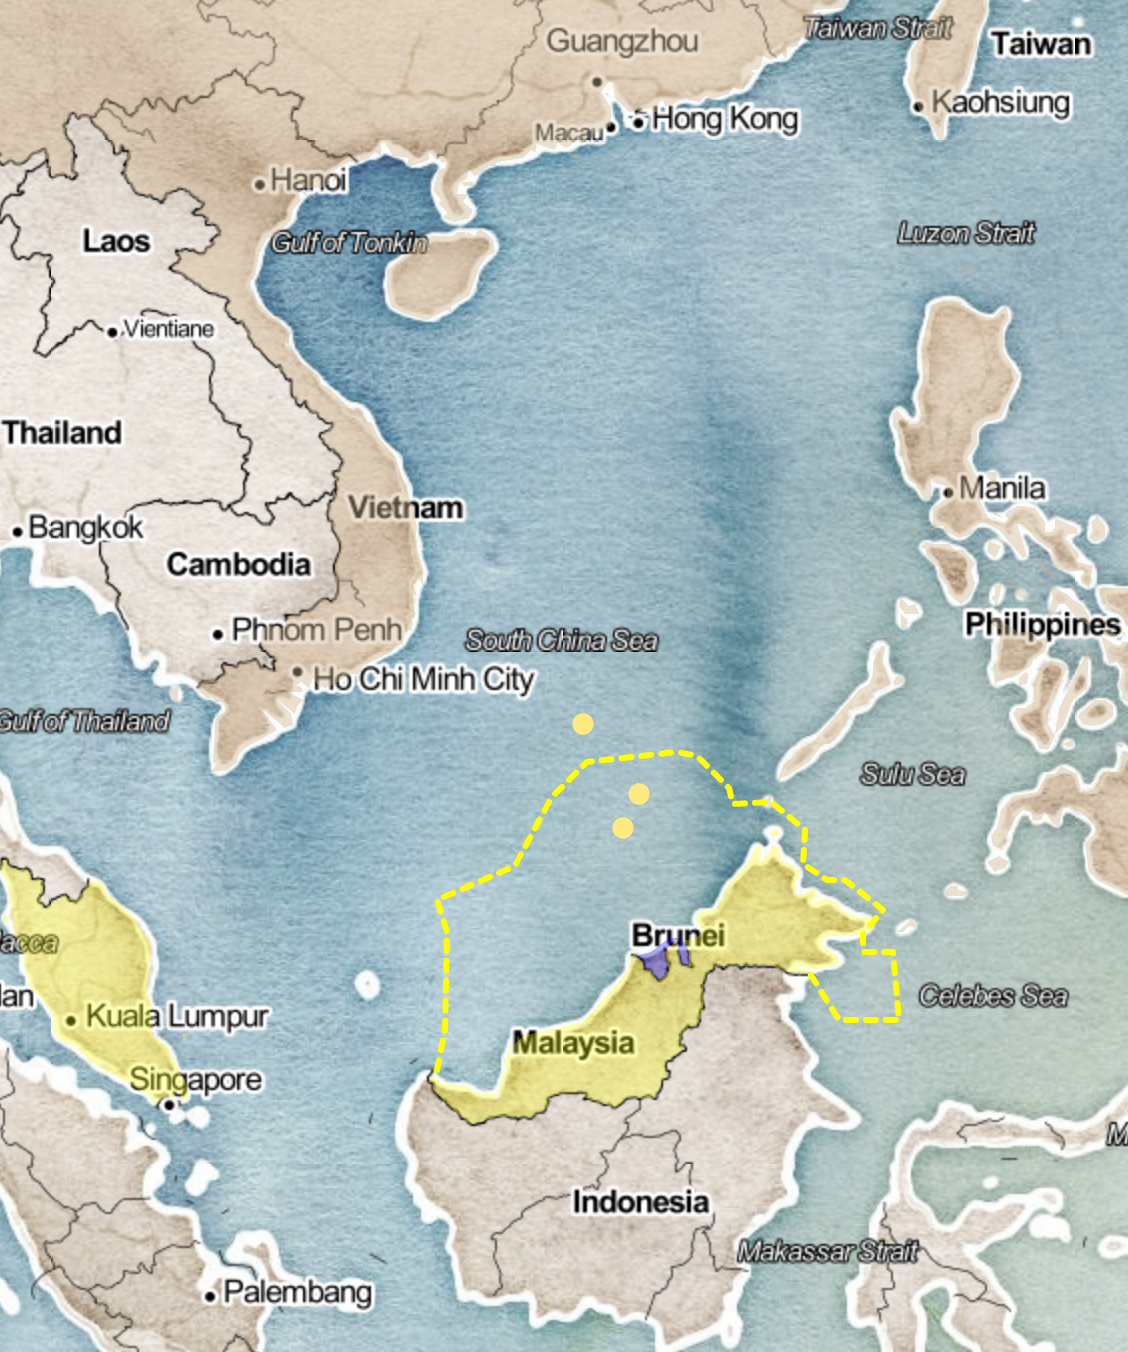 Map of Malaysia's claims in the South China Sea